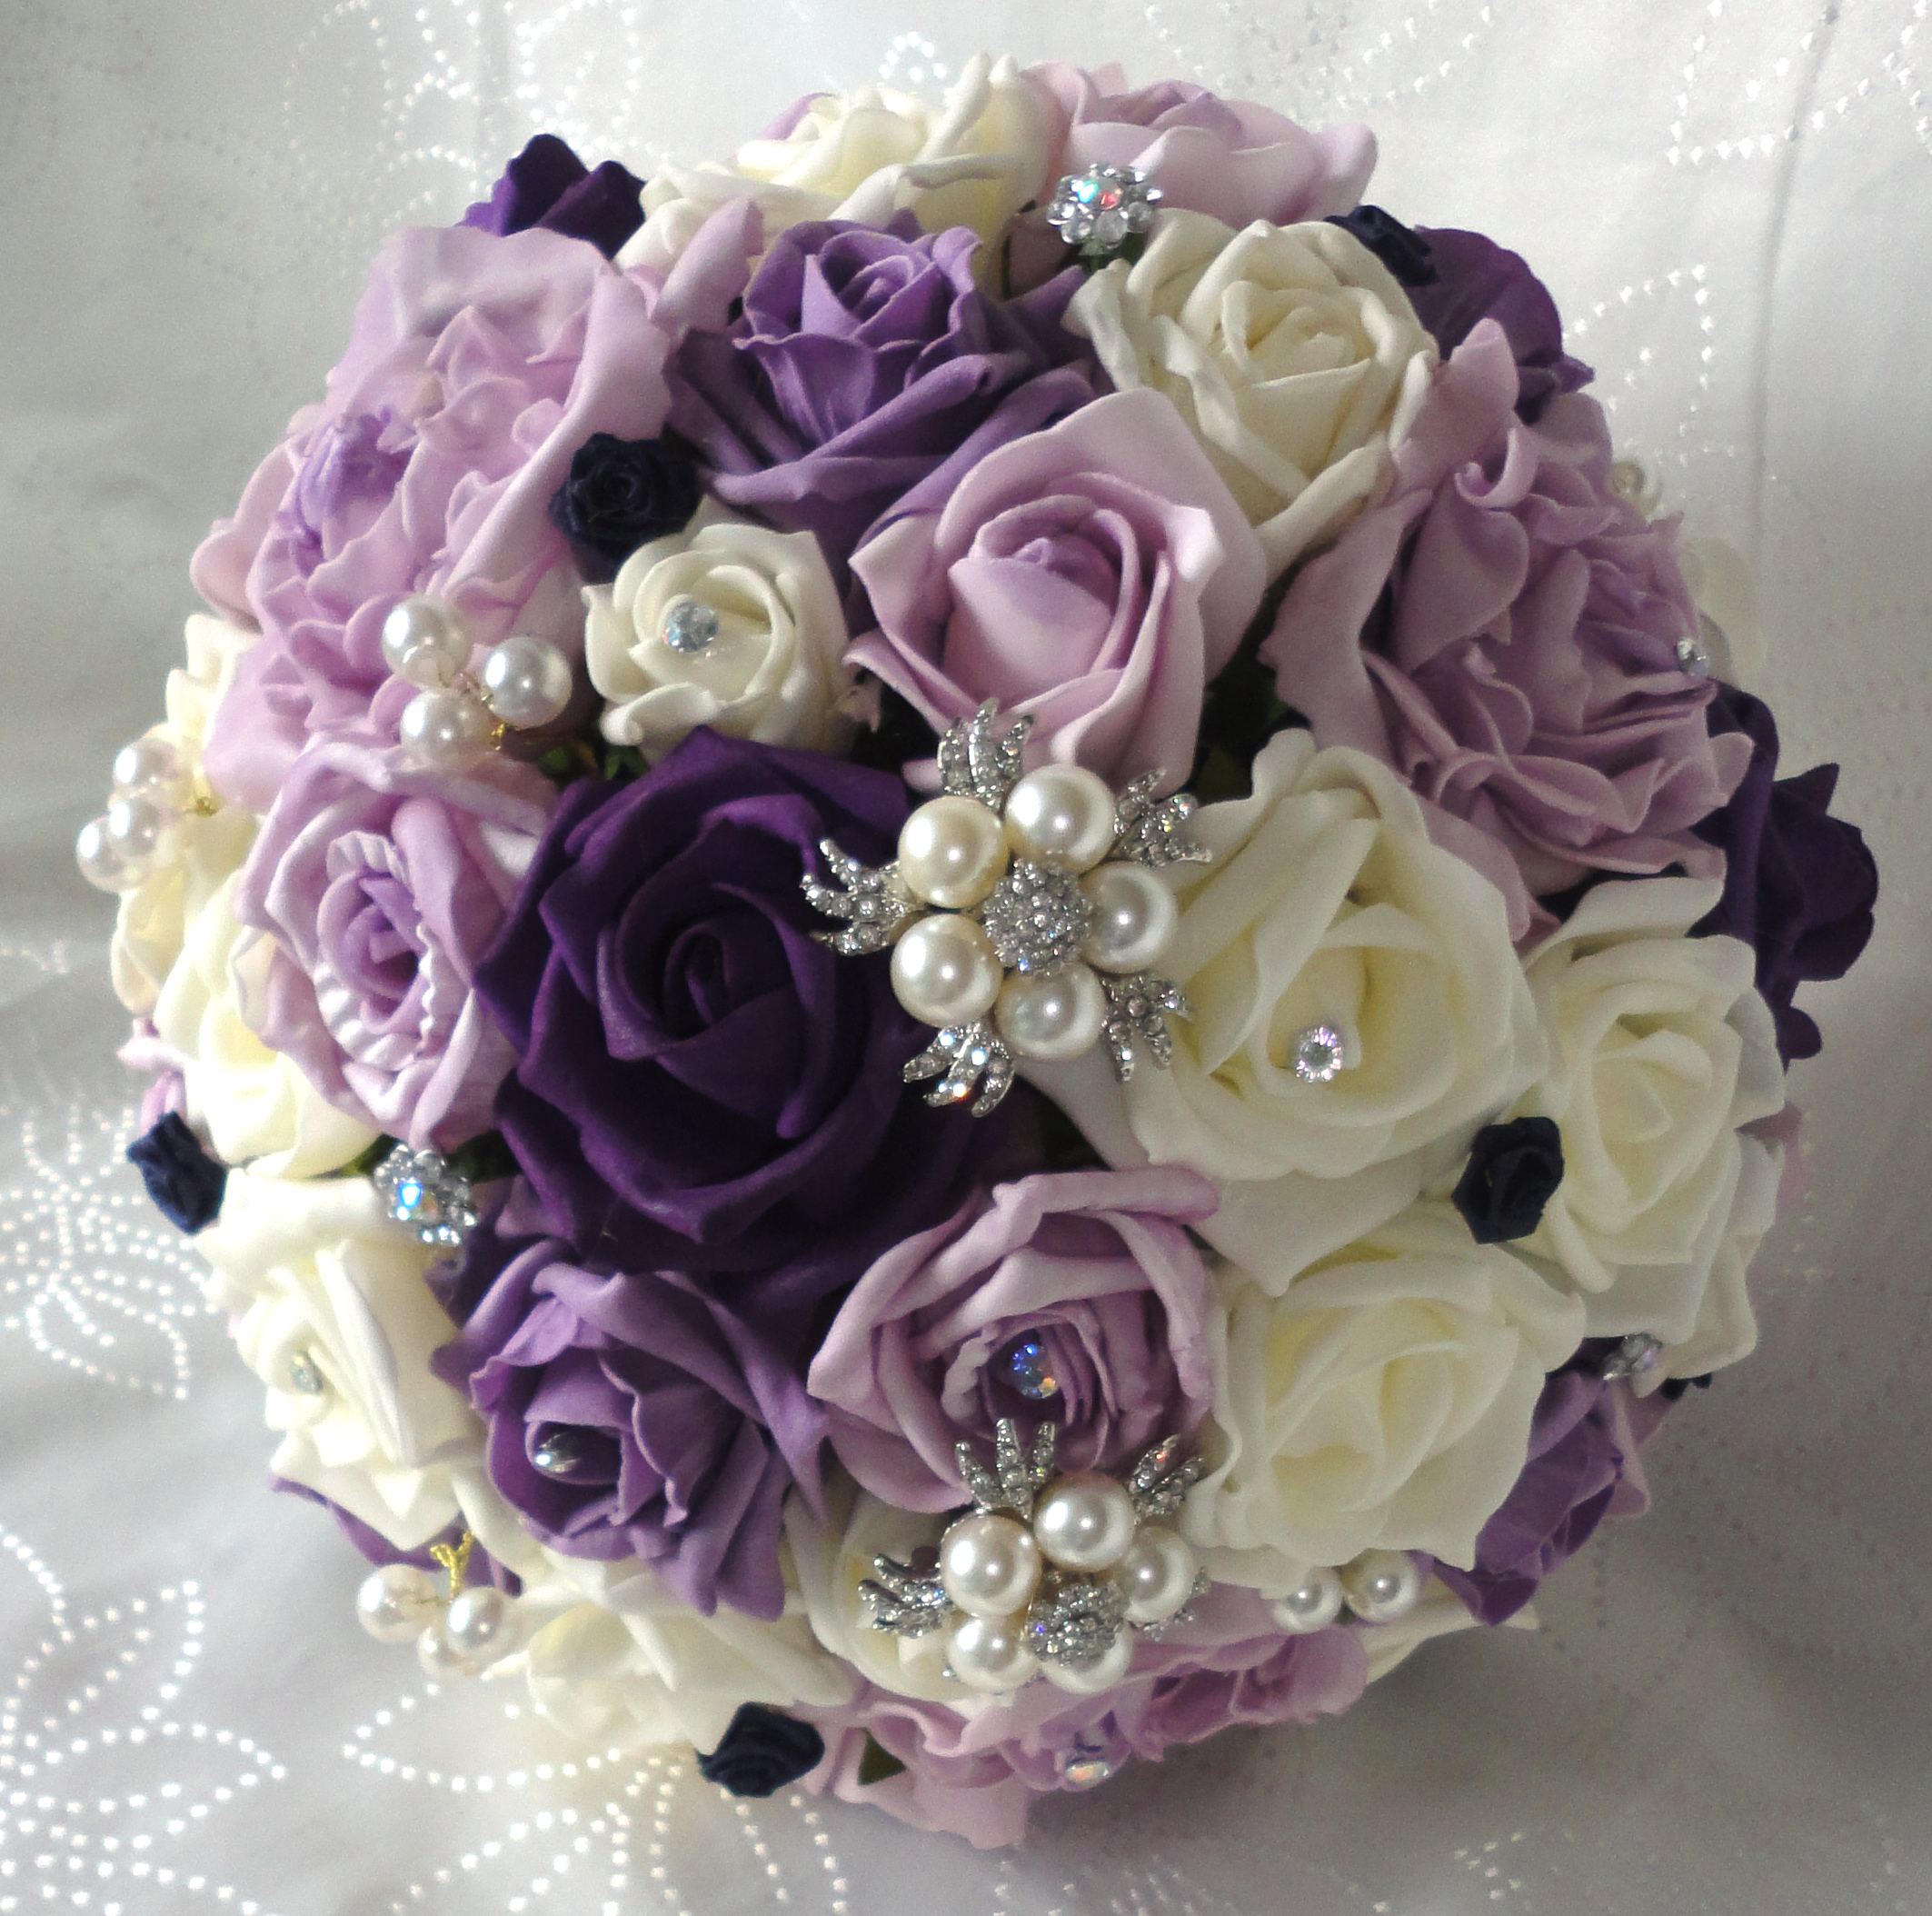 Plum and ivory wedding bouquet bb353 plum lilac and ivory wedding bouquet bb353 izmirmasajfo